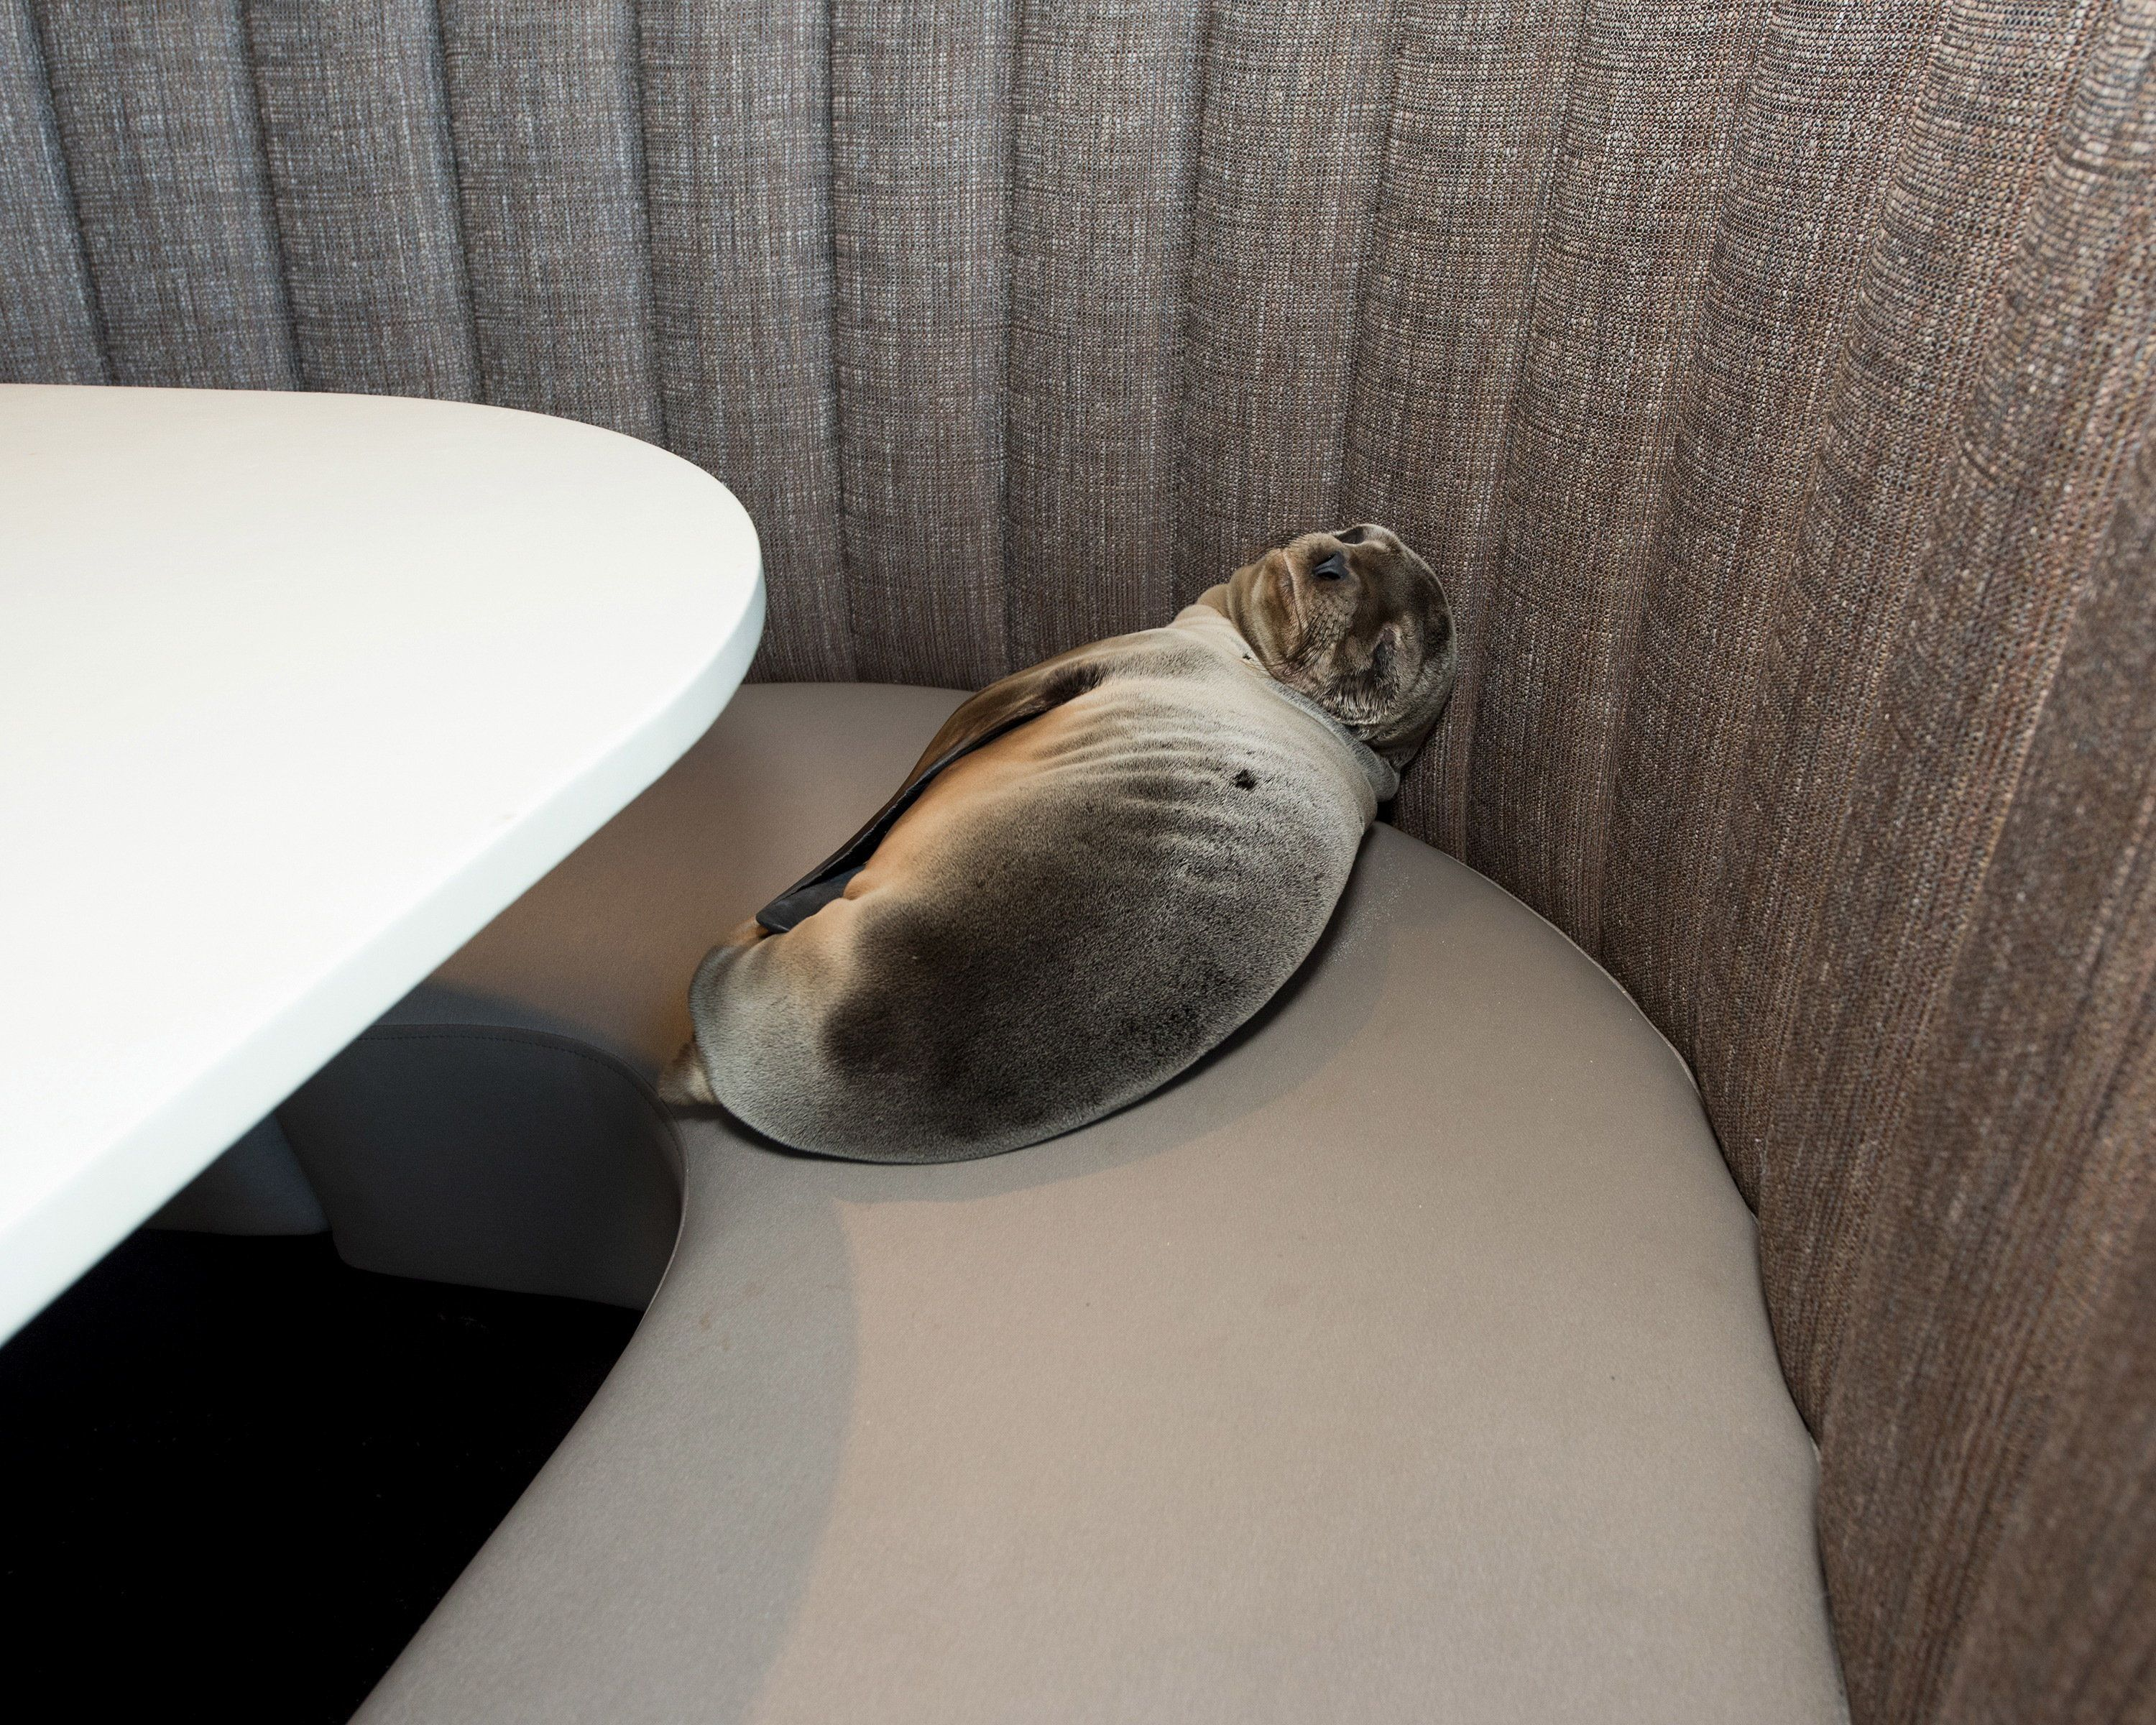 An eight-month-old female California sea lion pup is seen after being found sleeping in a booth in the dining room of the iconic Marine Room restaurant in La Jolla, California in this handout photo taken February 4, 2016. A rescue team from the SeaWorld San Diego theme park was called in to pull the barking mammal from the booth and place it in a net. The mammal was then taken to SeaWorld for care, said David Koontz, a spokesman for the tourist center.   REUTERS/Mike Aguilera/SeaWorld�San Diego/Handout via Reuters  ATTENTION EDITORS - THIS PICTURE WAS PROVIDED BY A THIRD PARTY. REUTERS IS UNABLE TO INDEPENDENTLY VERIFY THE AUTHENTICITY, CONTENT, LOCATION OR DATE OF THIS IMAGE. THIS PICTURE IS DISTRIBUTED EXACTLY AS RECEIVED BY REUTERS, AS A SERVICE TO CLIENTS.  EDITORIAL USE ONLY. NO RESALES. NO ARCHIVE.      TPX IMAGES OF THE DAY